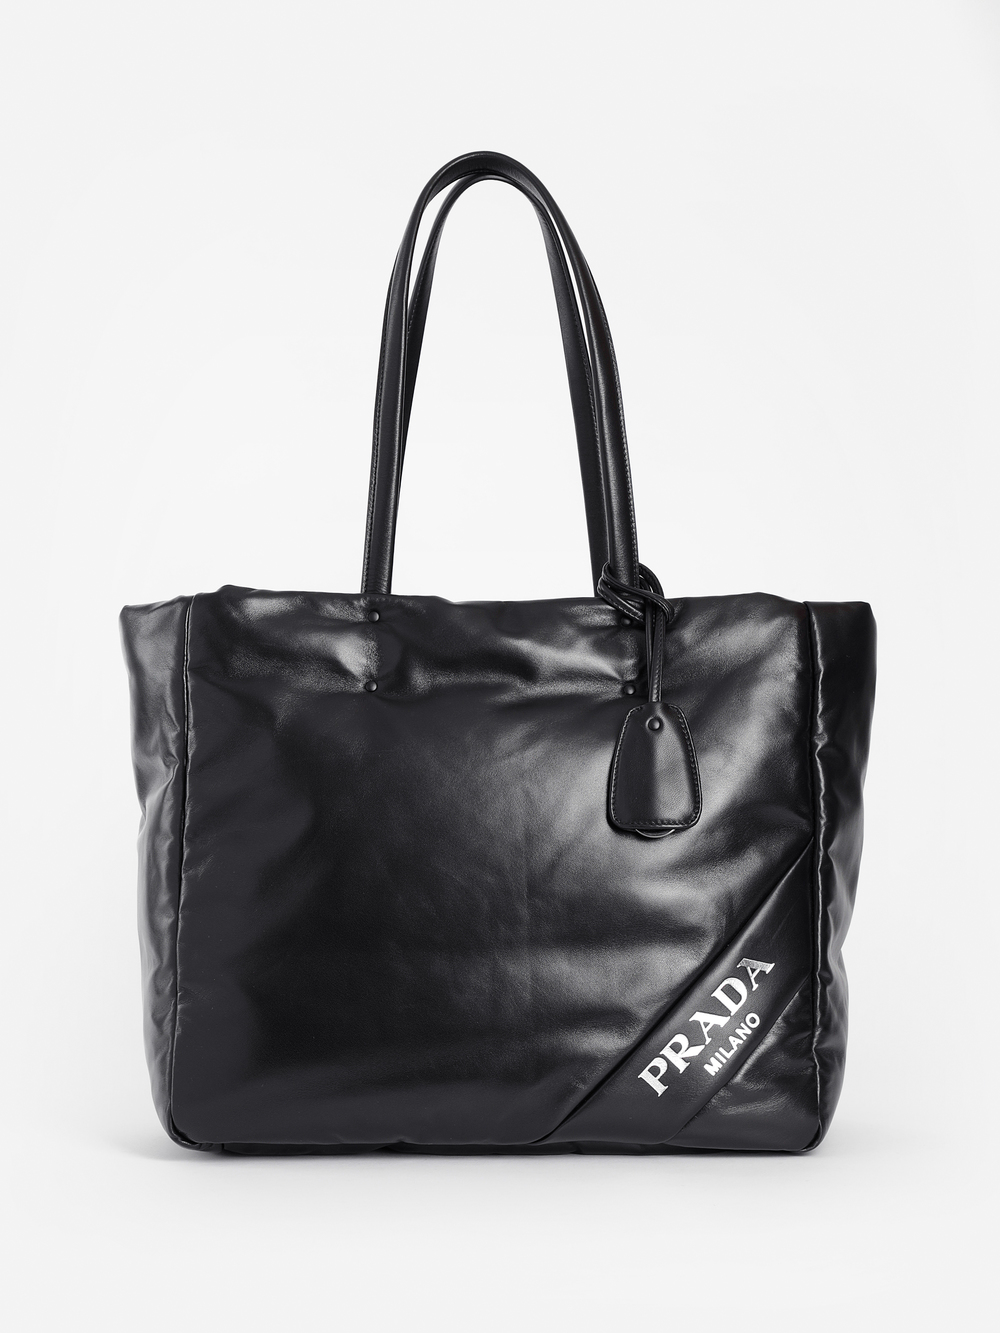 Prada Totes PRADA WOMEN'S BLACK PADDED TOTE BAG